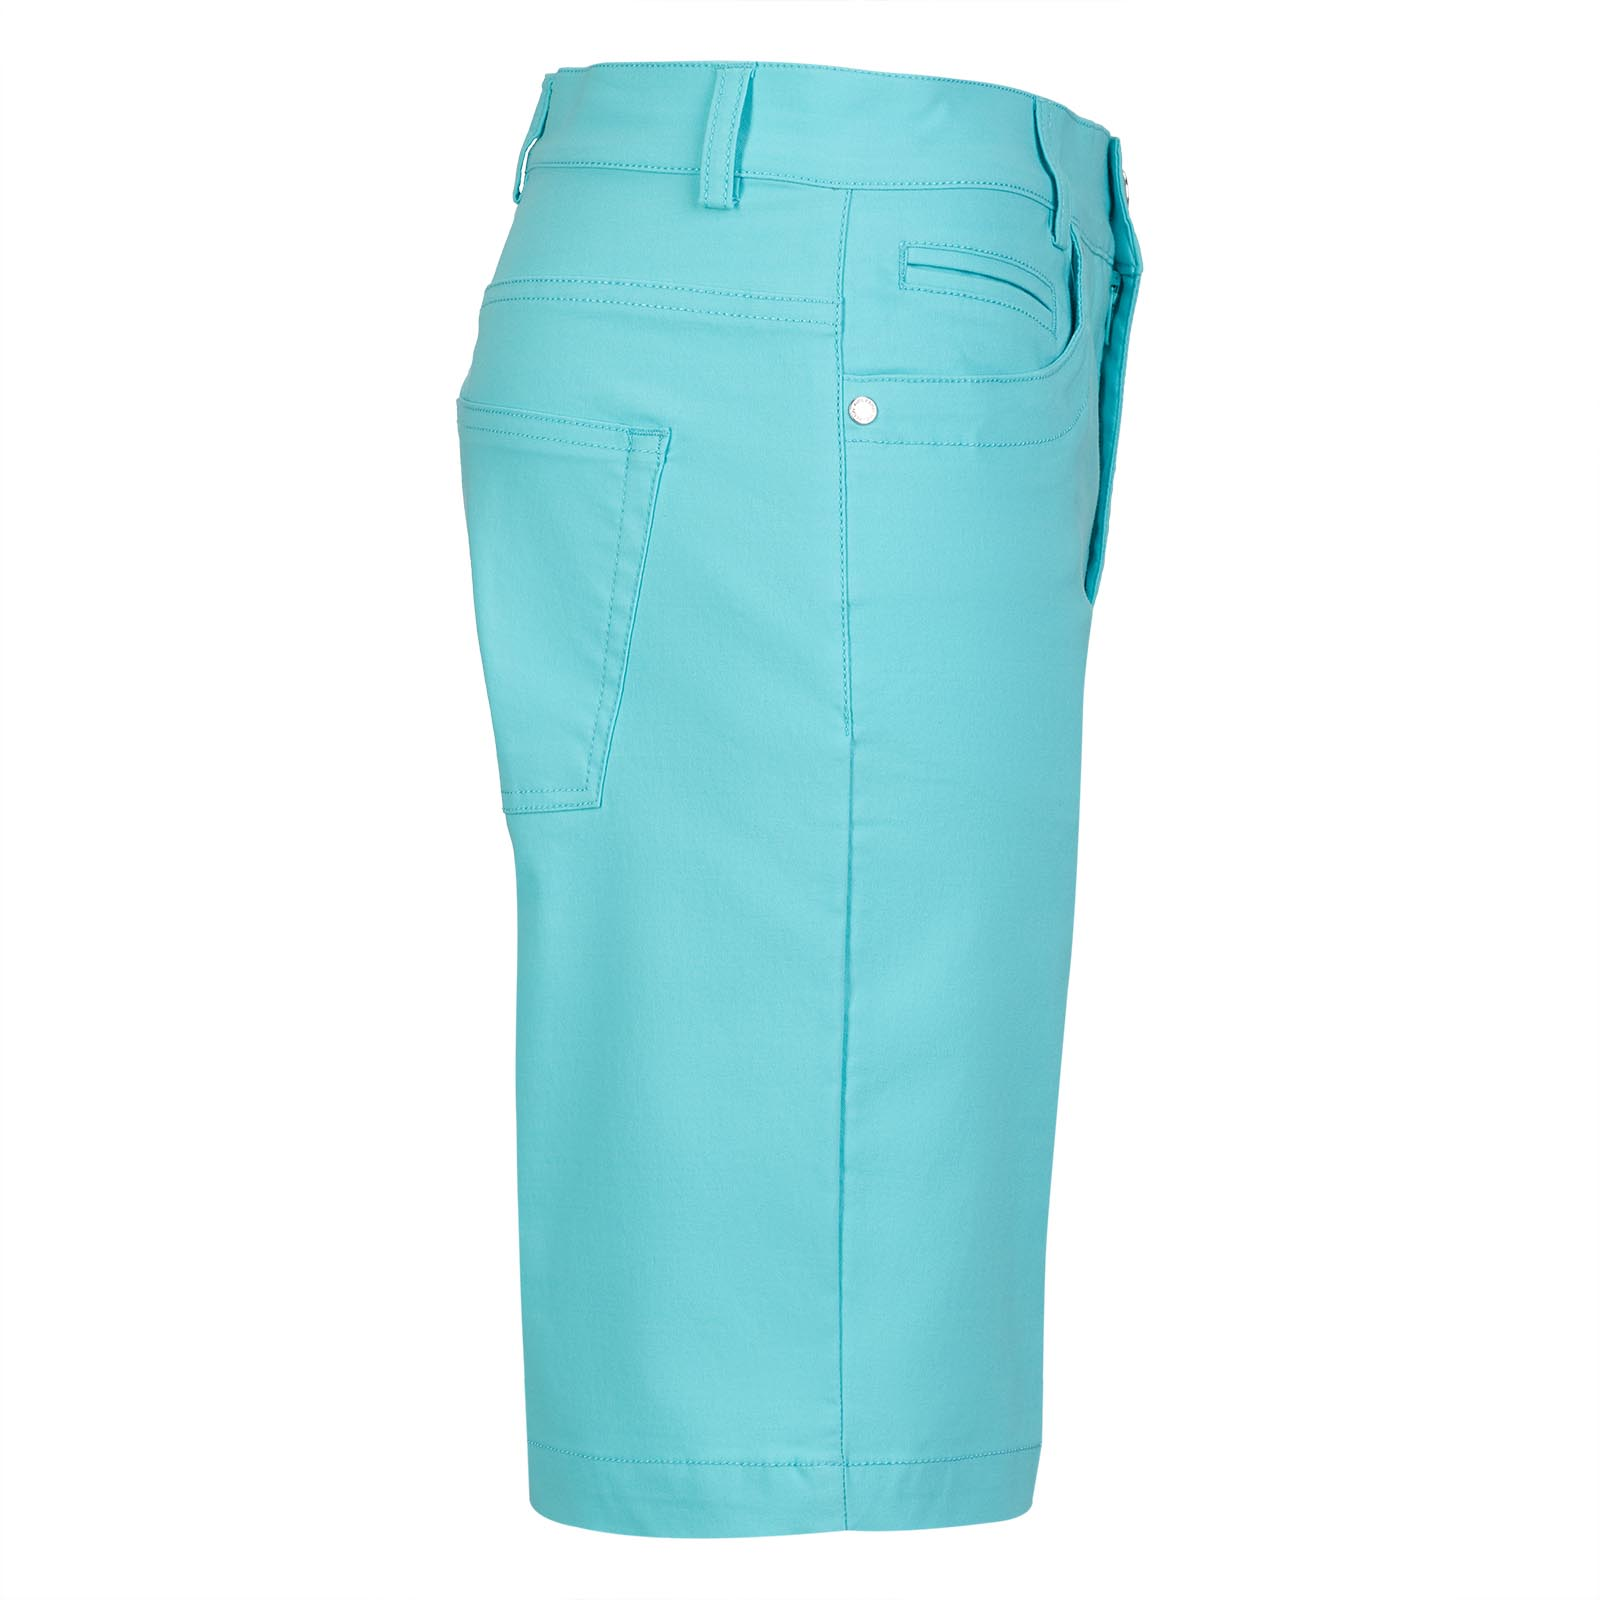 Damen Golf-Bermuda The Sofia aus Light Tech Stretch in Slim Fit